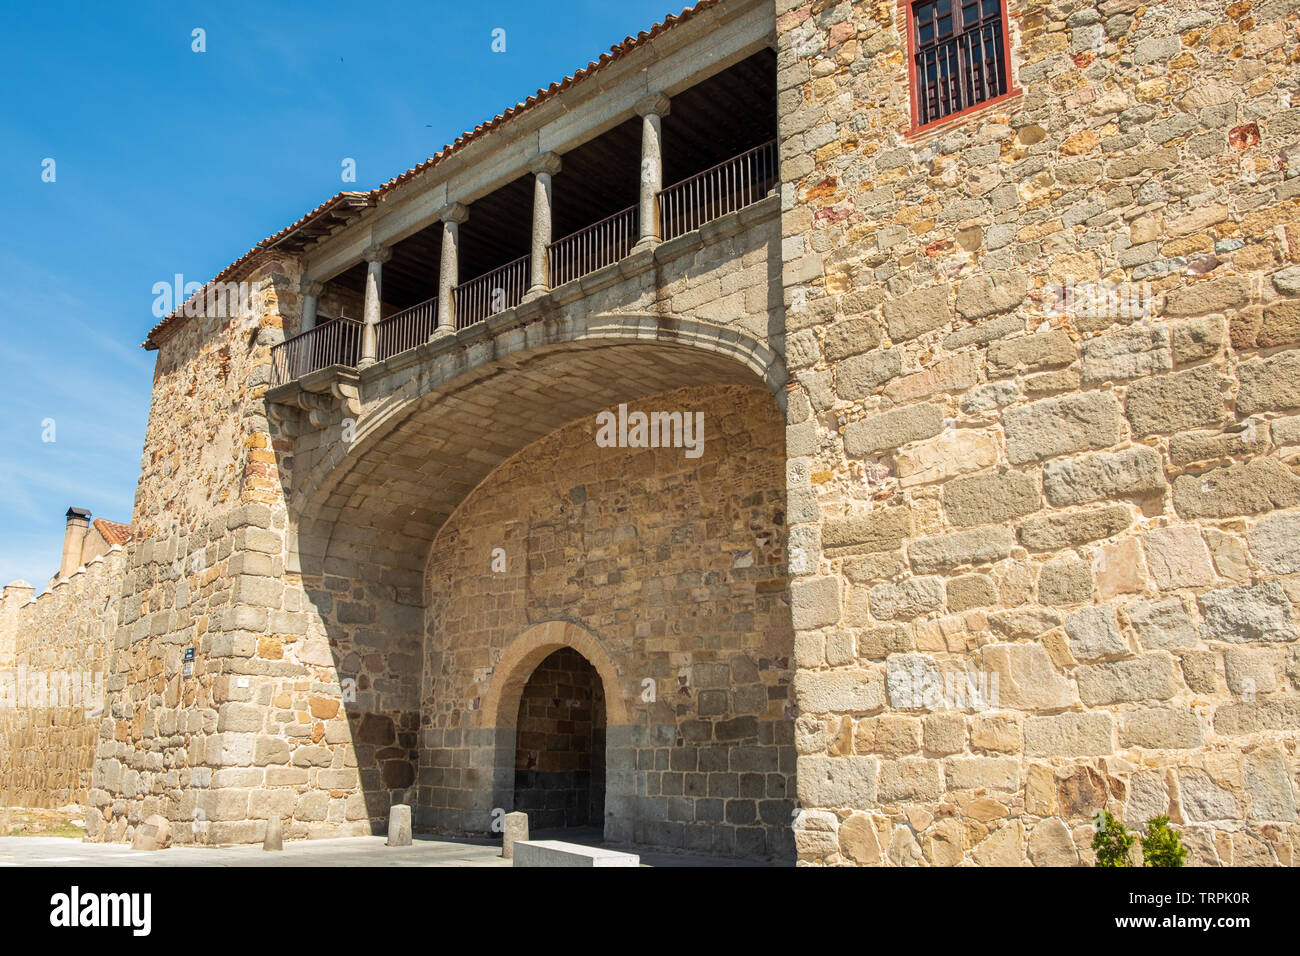 Walls surrounding Spanish city of Avila, detail of puerta del rastro or puerta de la estrella, attached to Palacio de los Davila - Stock Image